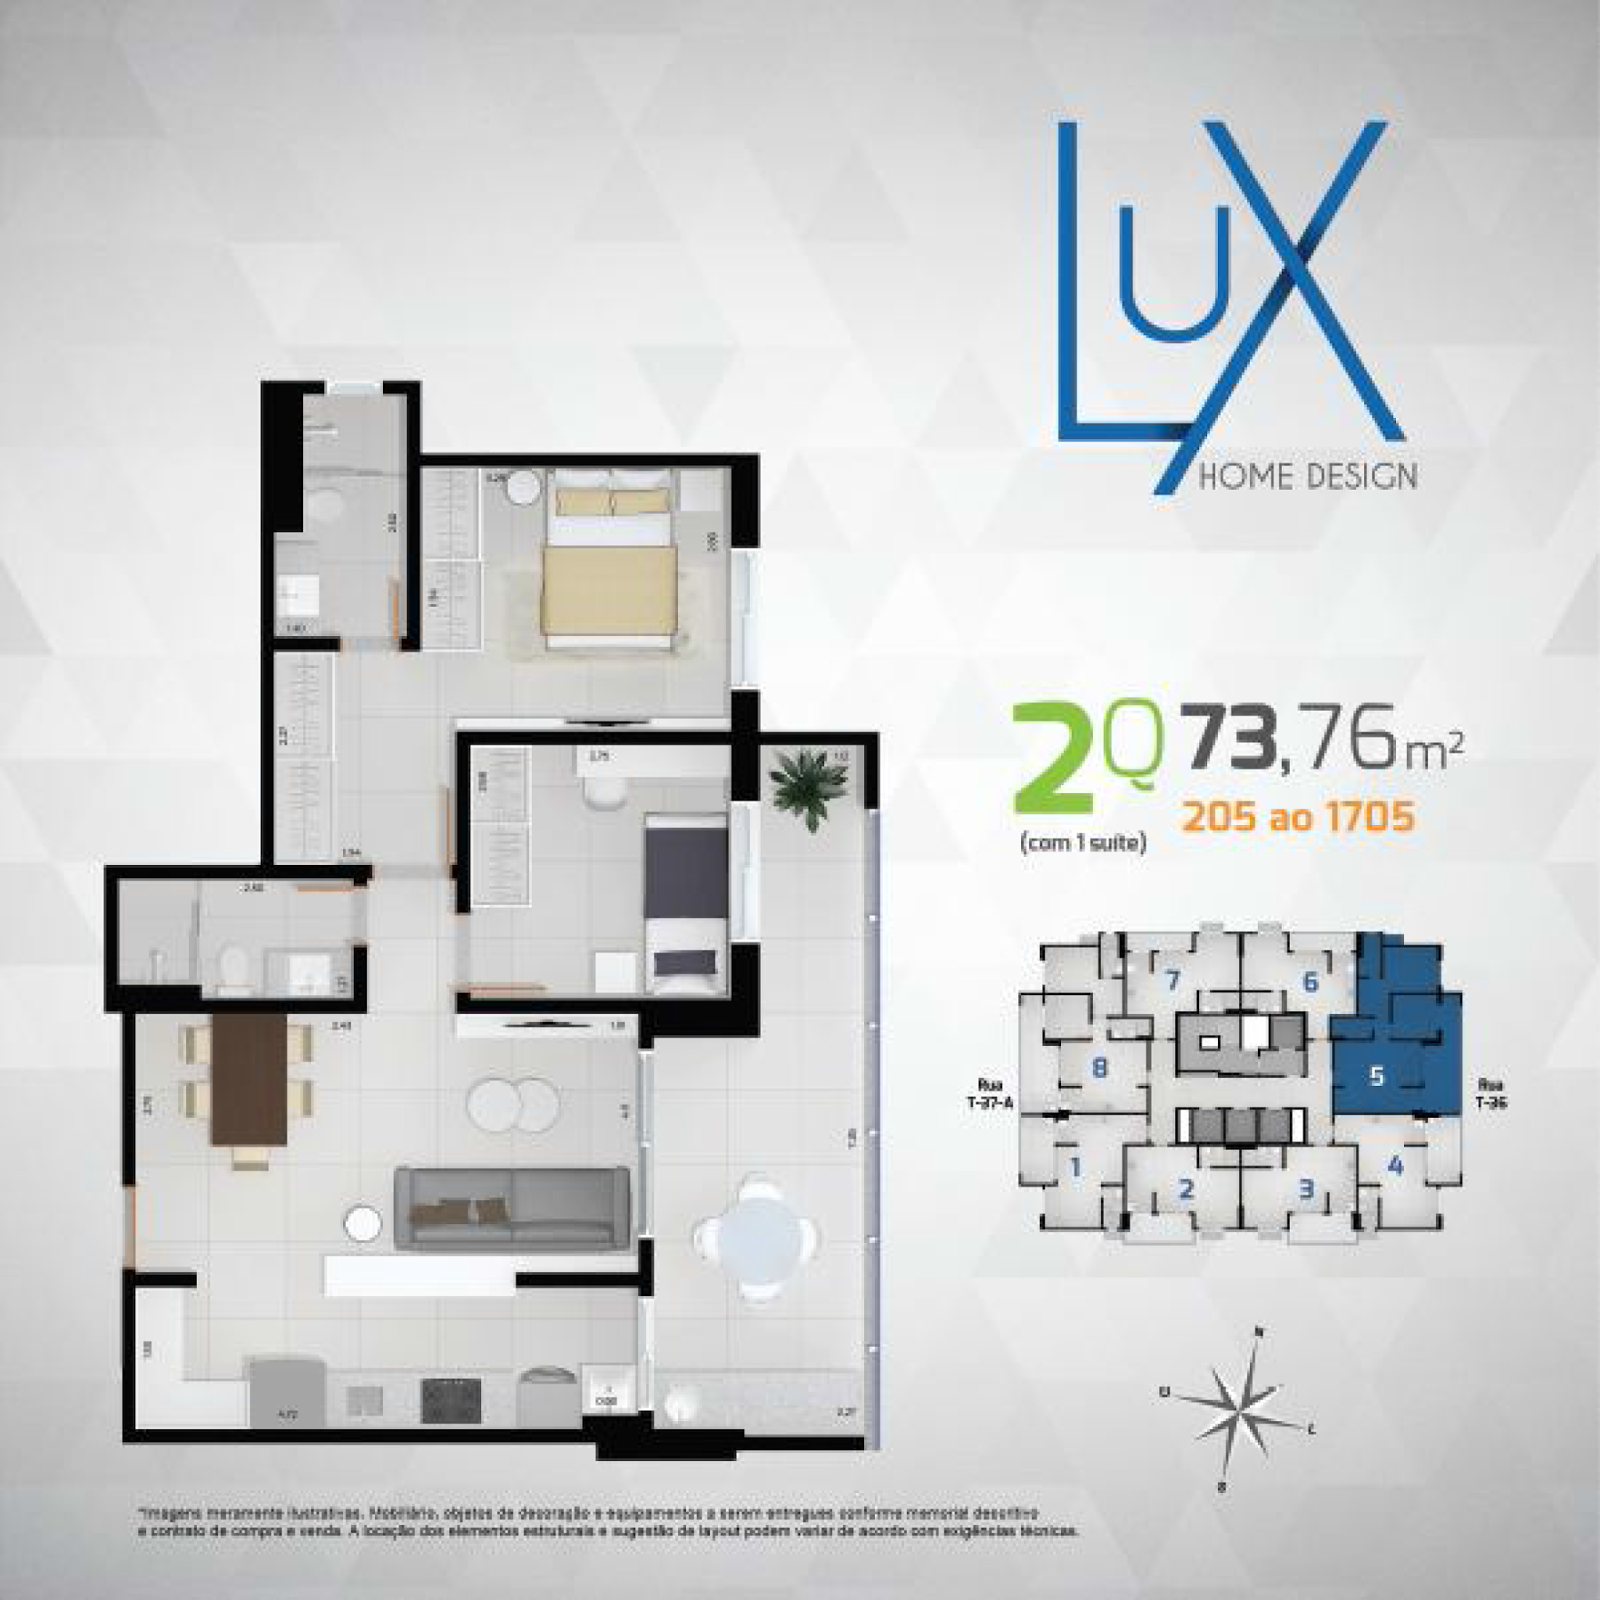 Lux Home Design Goiania Home Review Co